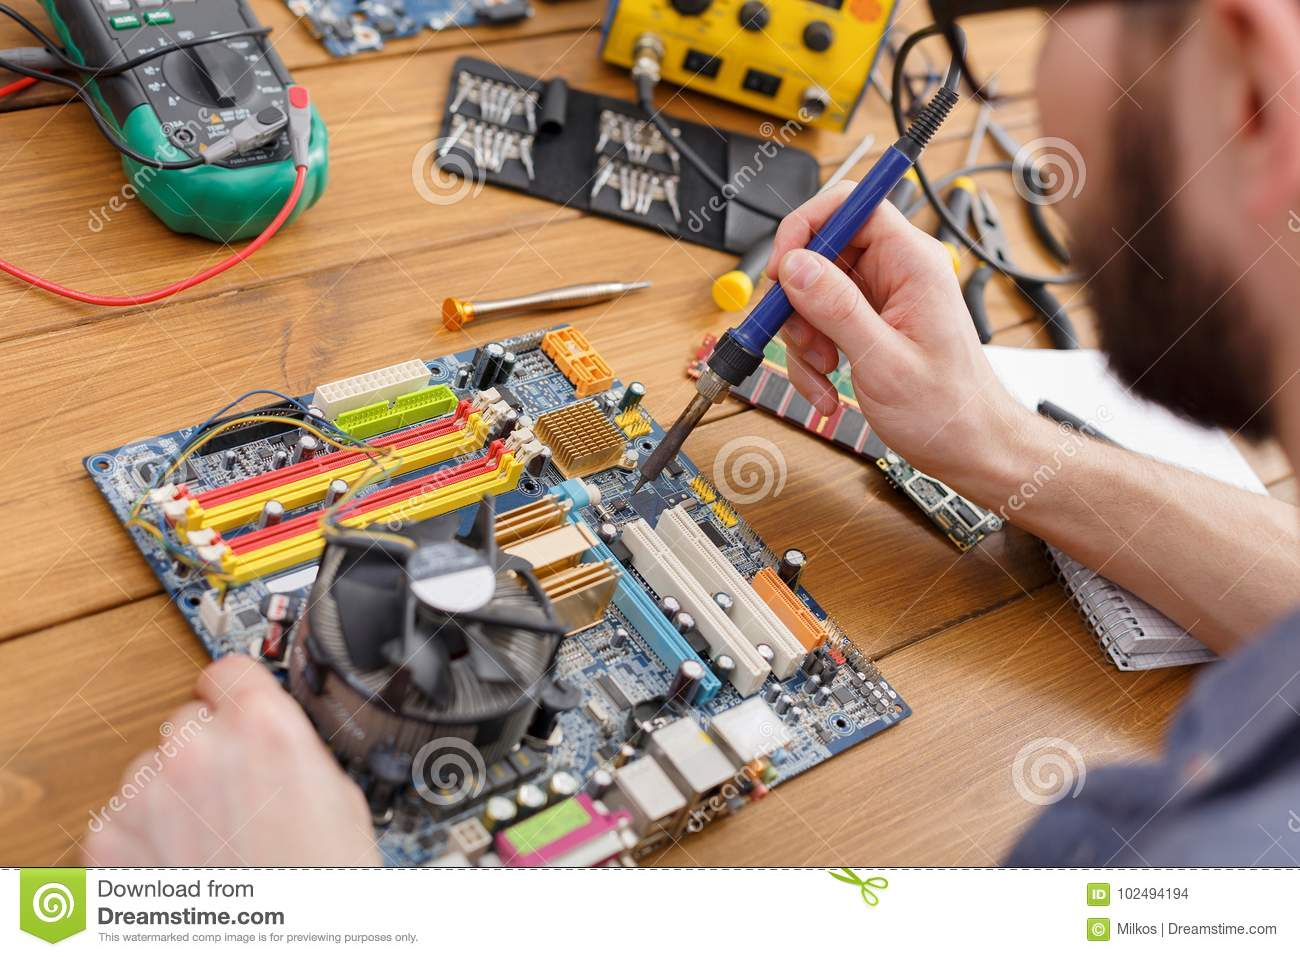 Repairman Soldering Computer Circuit In Workshop Stock Photo Image Technician Repairing Electronic Board With Iron